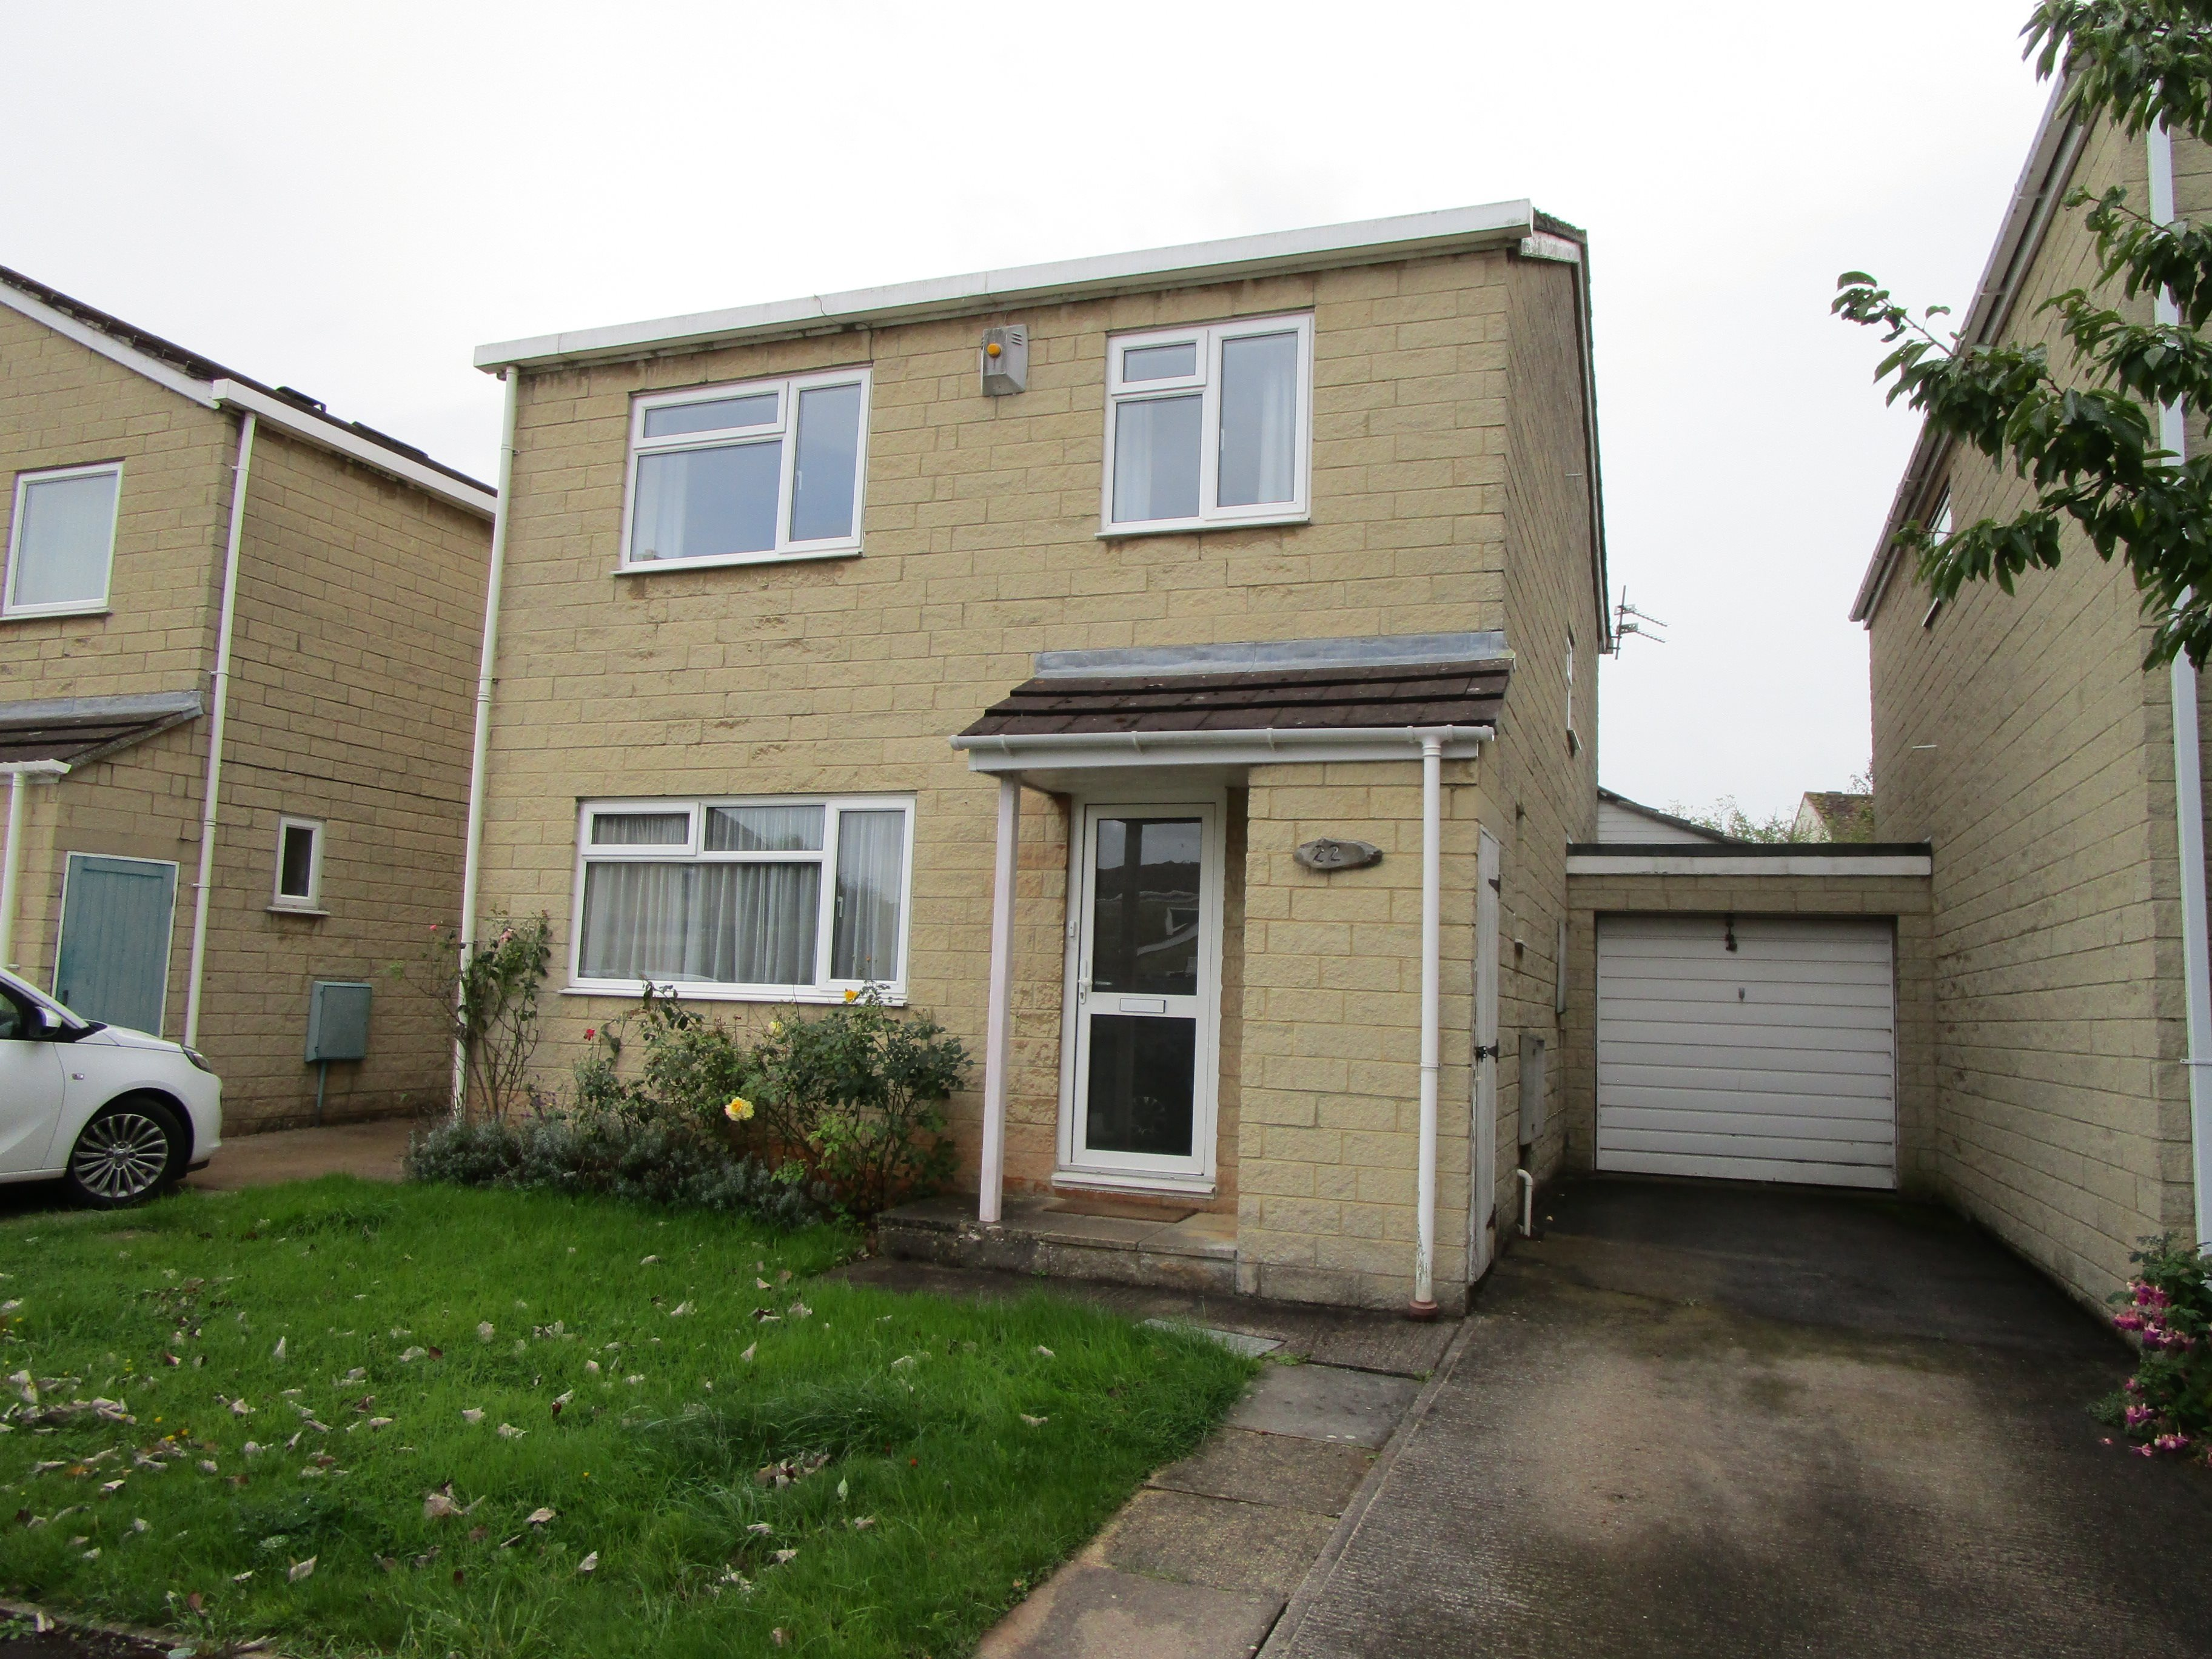 4 bed house to rent in Grampian Close, Oldland Common, BS30